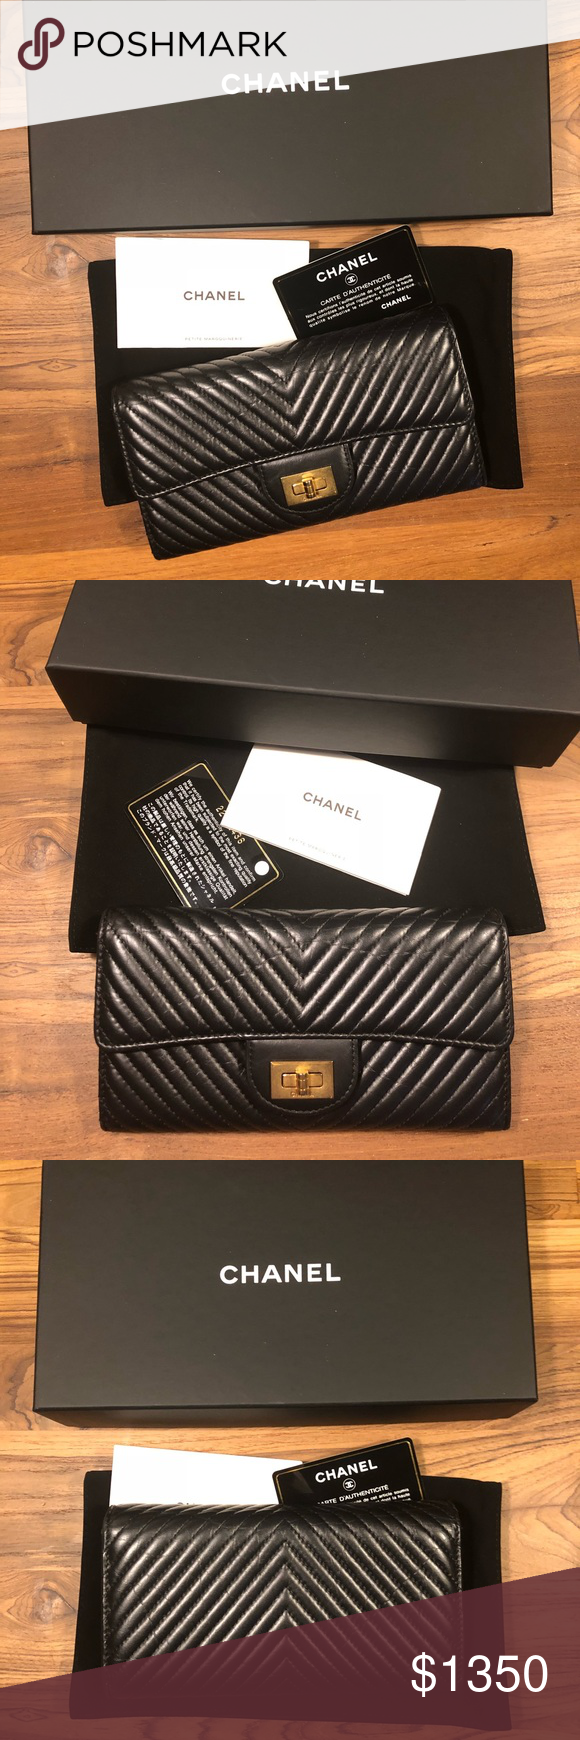 caf4230bed85 Authentic 2017 Chanel Chevron 2.55 Long Wallet Unicorn alert 🦄 Rare  combination of chevron and